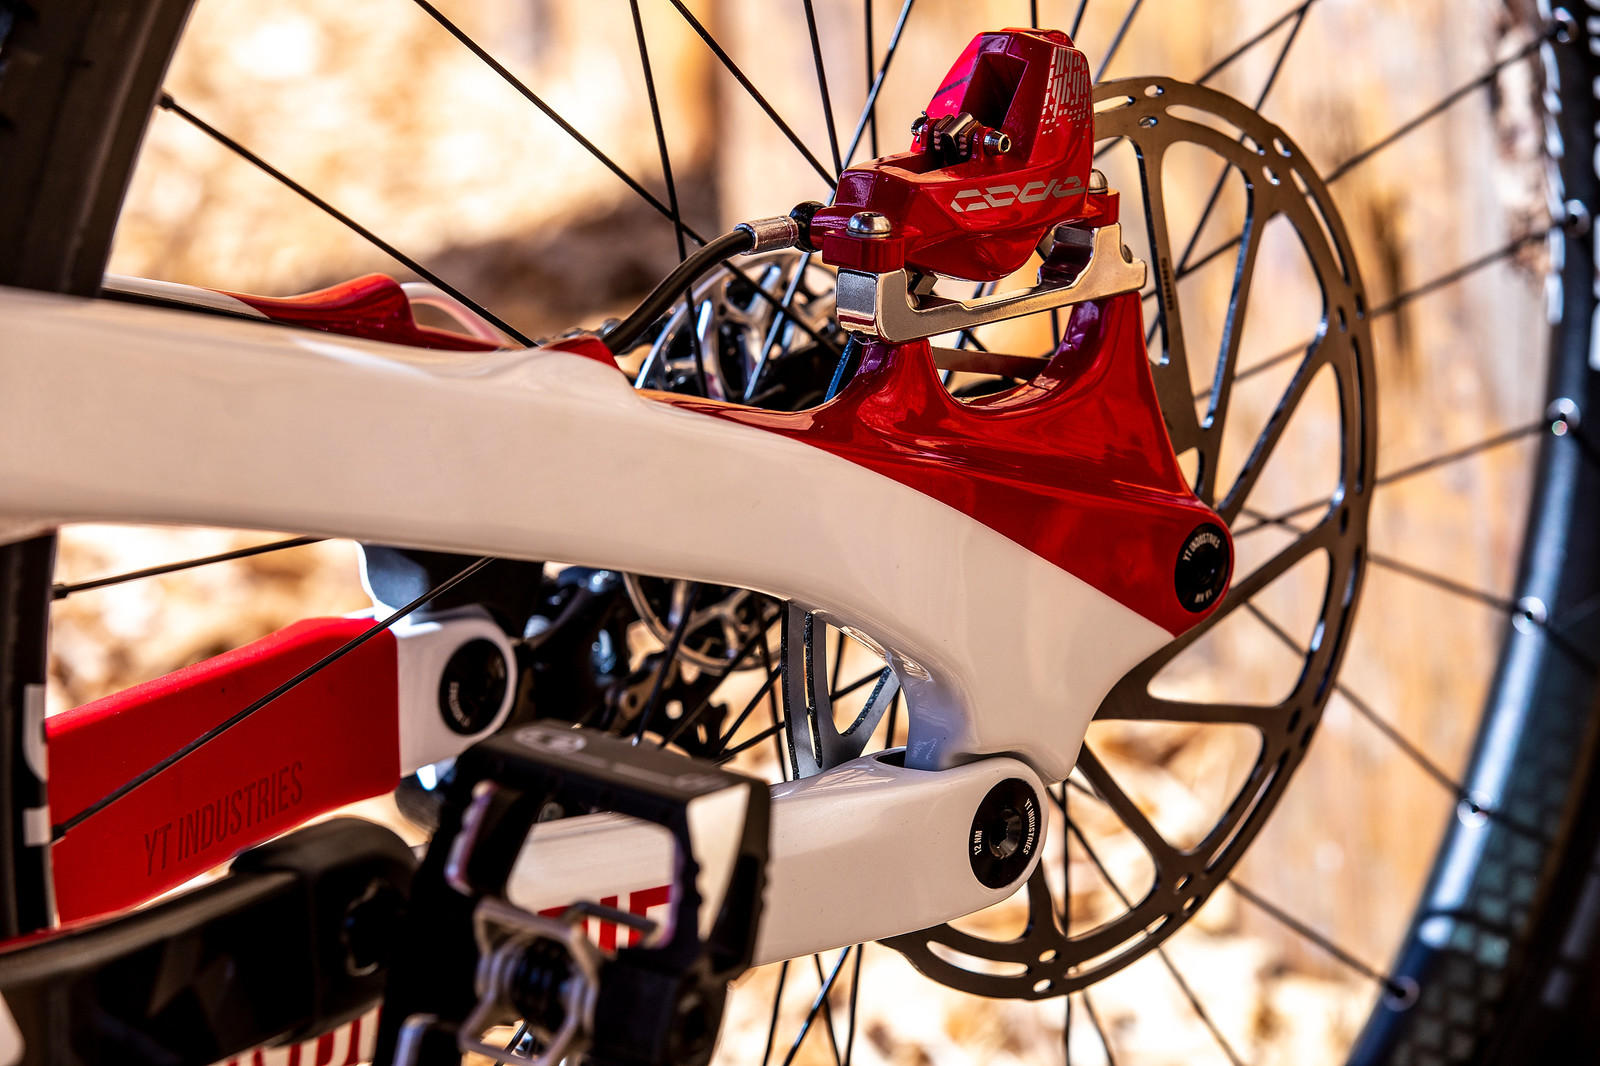 Red CODES - WORLD CHAMPS BIKE - Vali Holl's YT TUES - Mountain Biking Pictures - Vital MTB